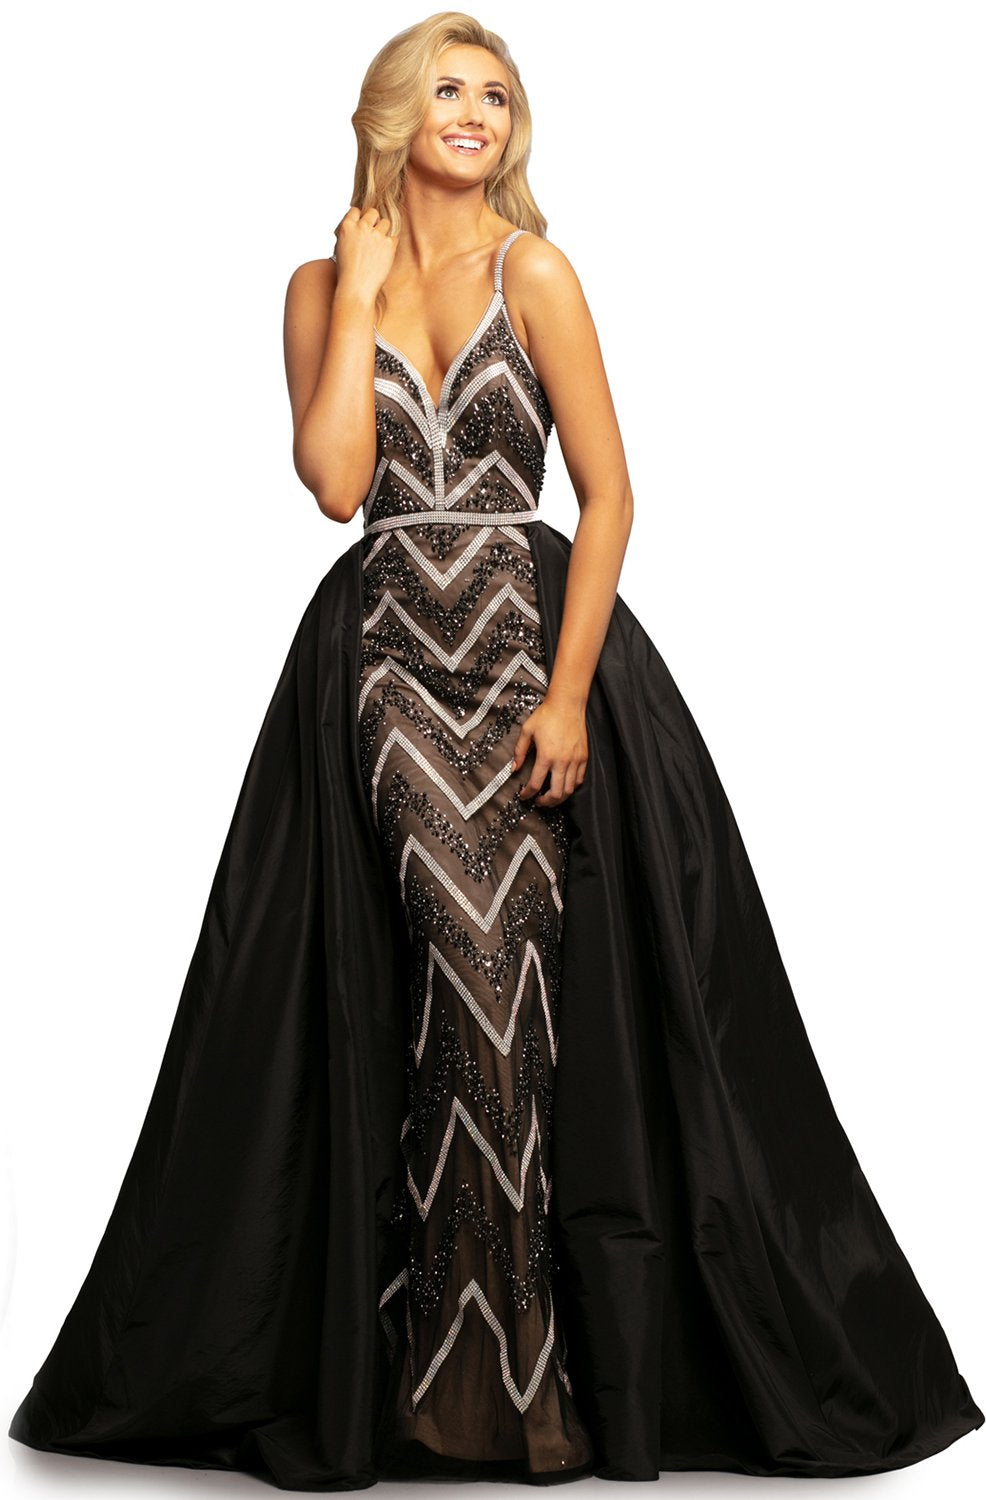 Johnathan Kayne - 2052 Embellished Dress with Ballgown Overskirt In Black and Neutral